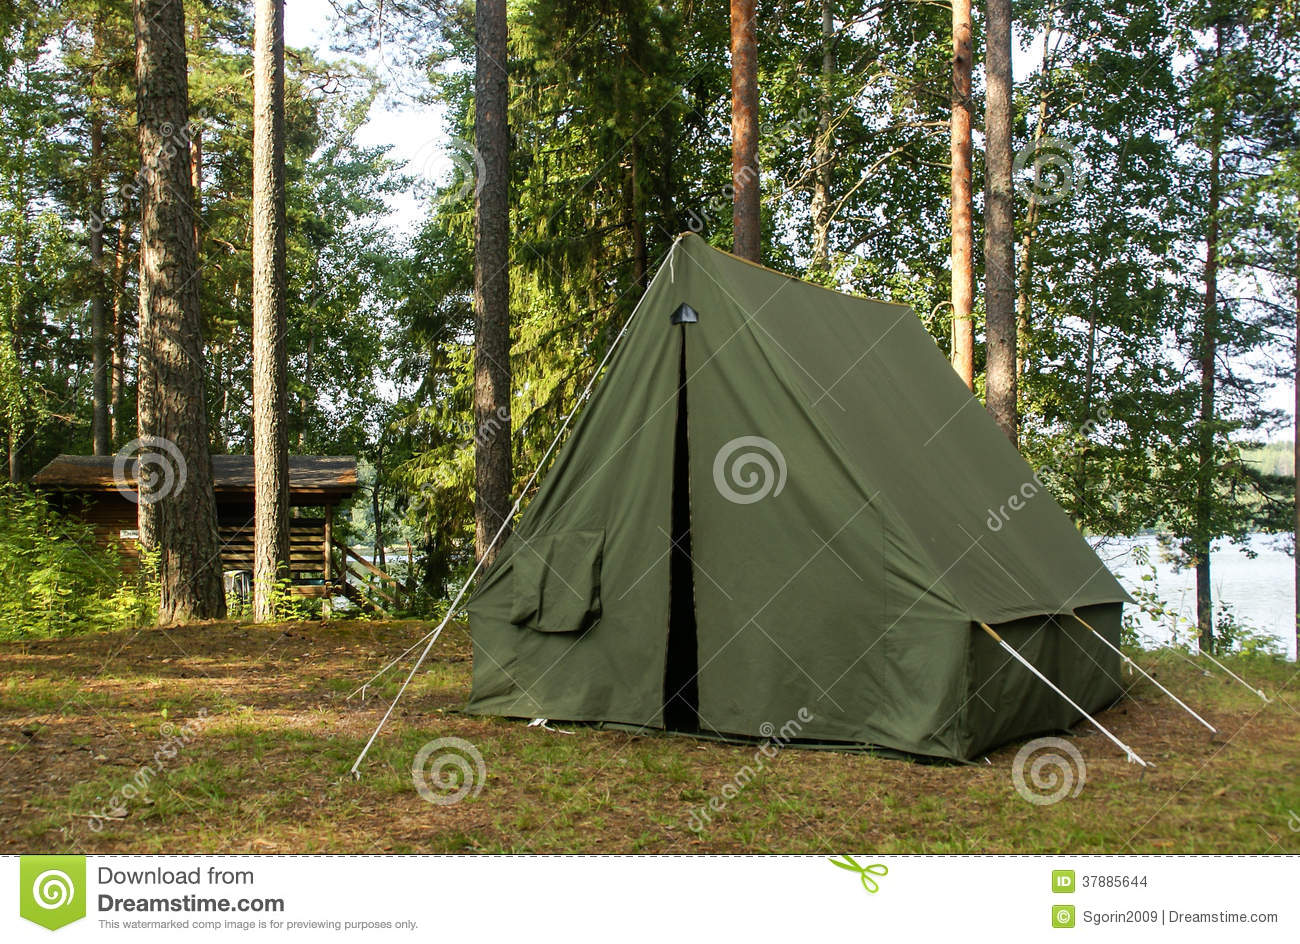 Oldschool soviet tent in nothern forest & Oldschool Soviet Tent In Nothern Forest Stock Photo - Image of ...